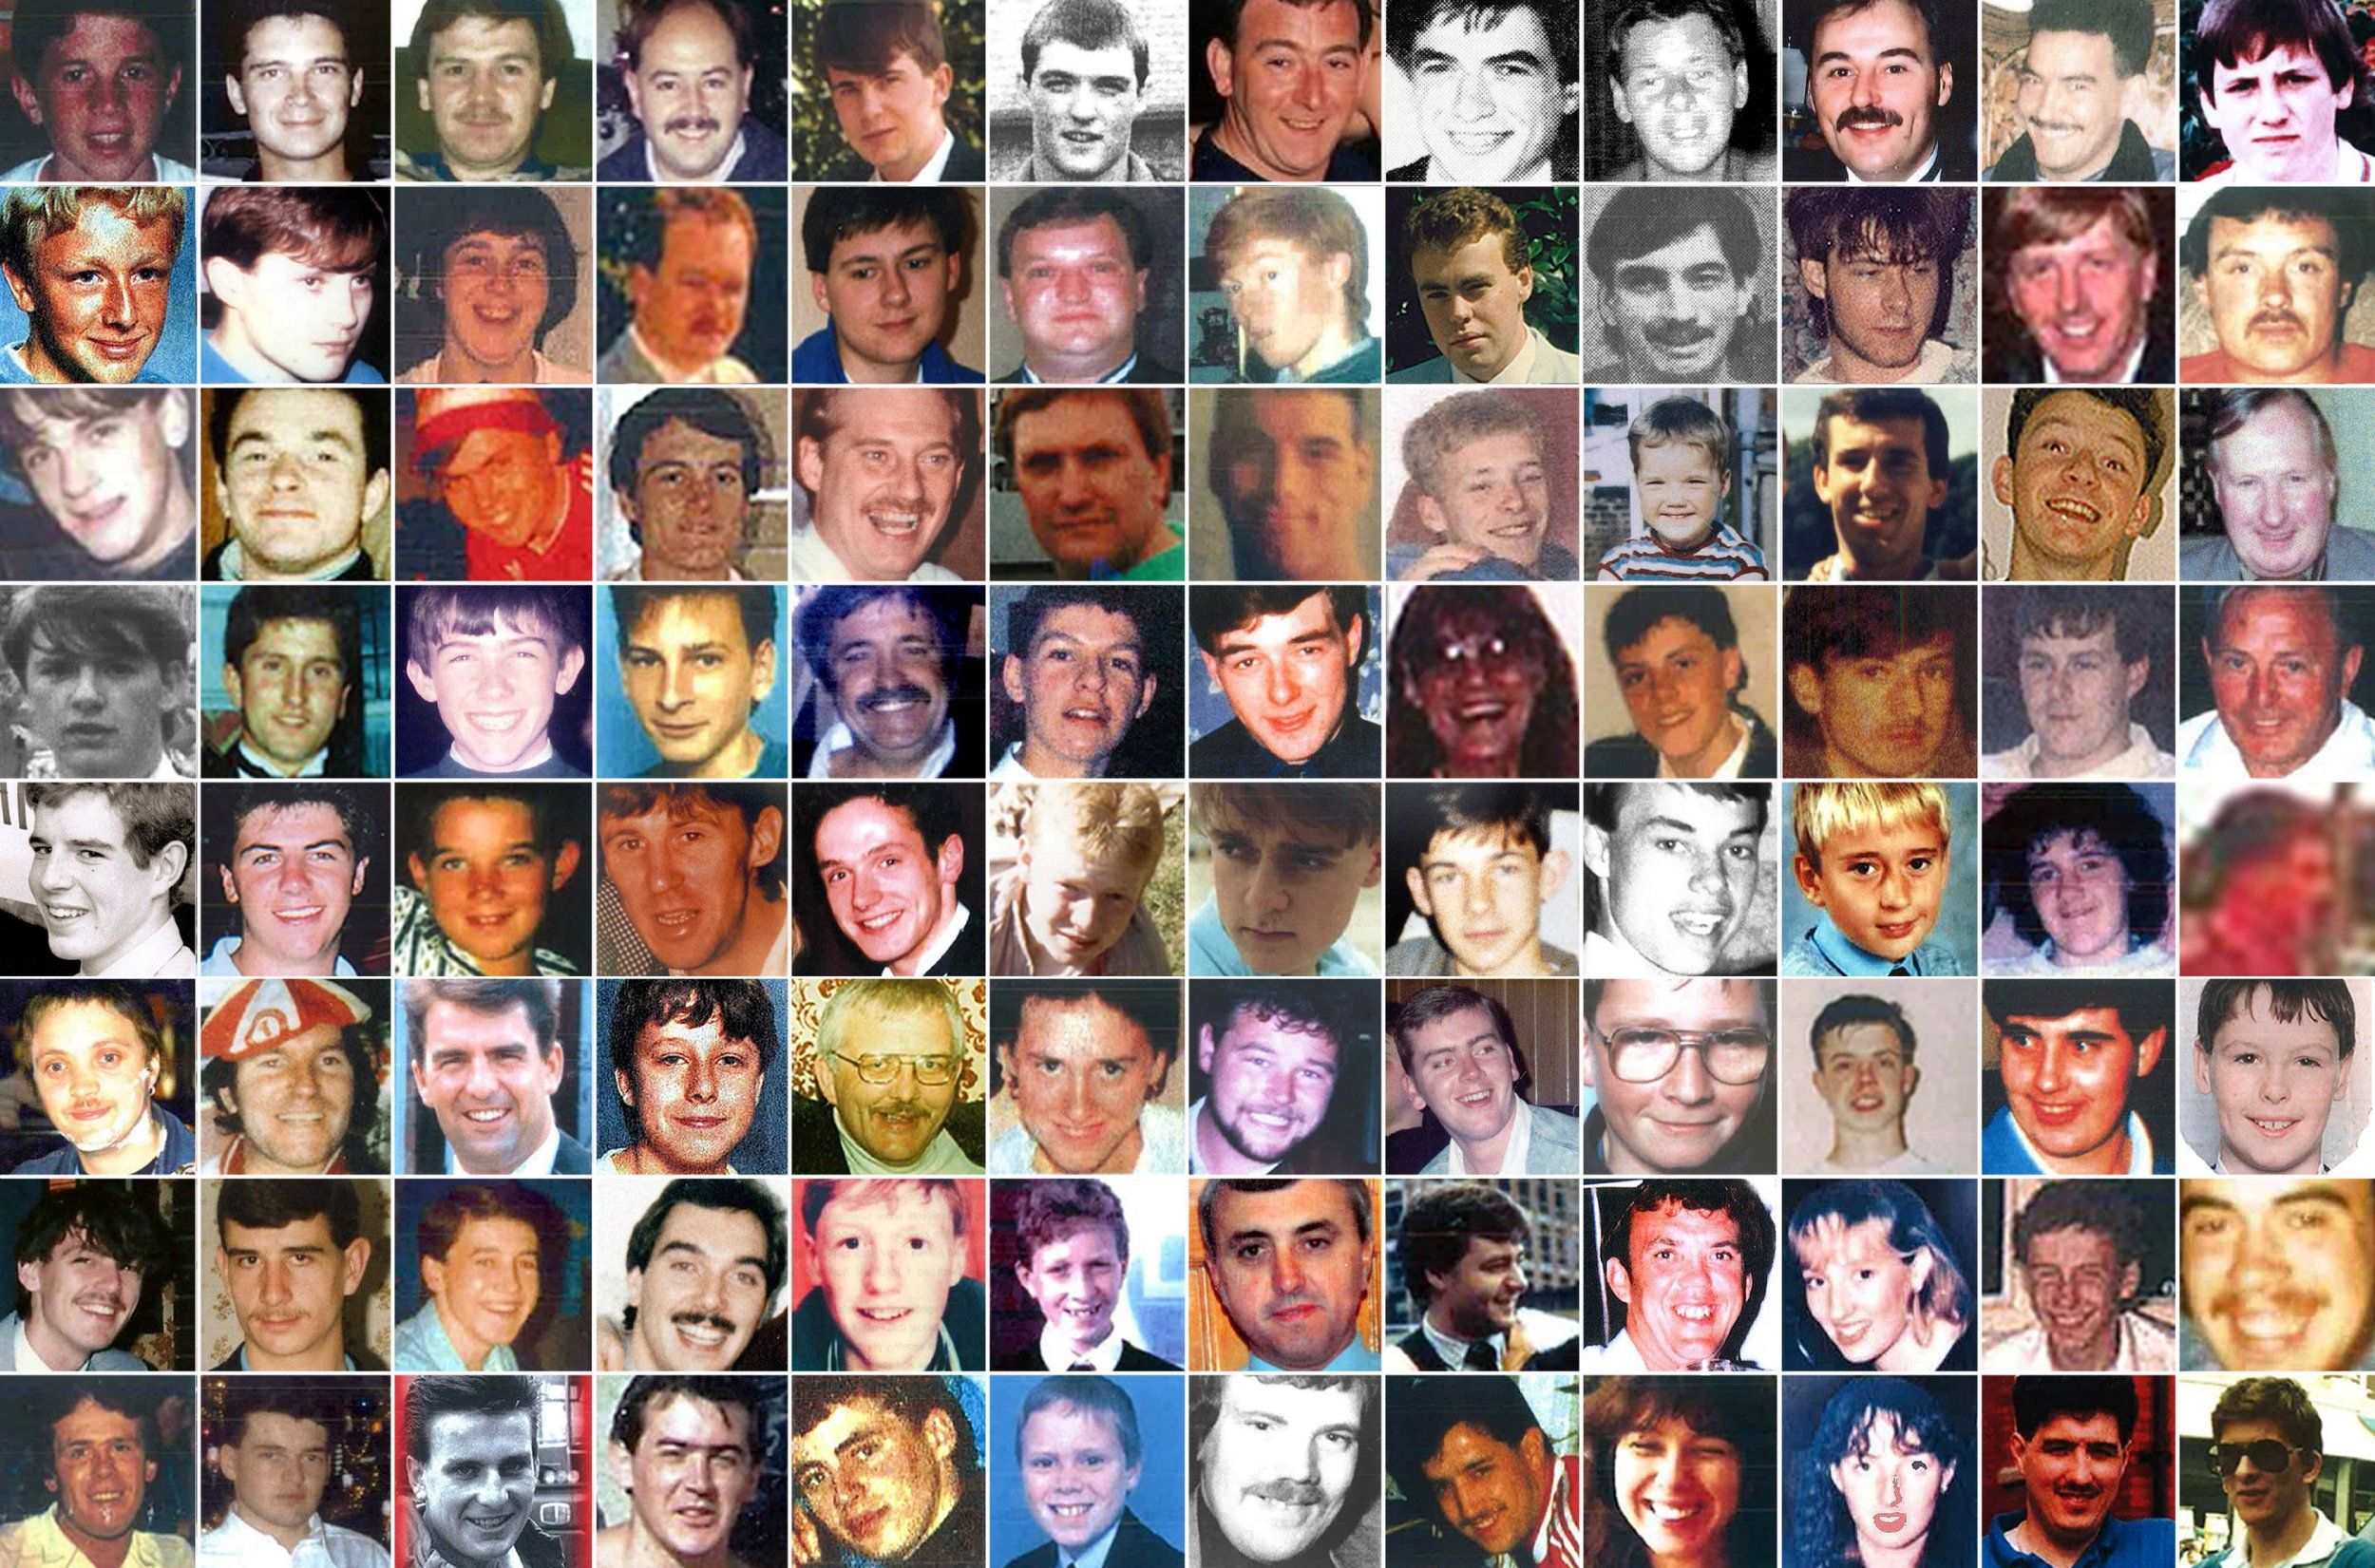 Remembering the 96 victims of the Hillsborough Disaster 30 years on